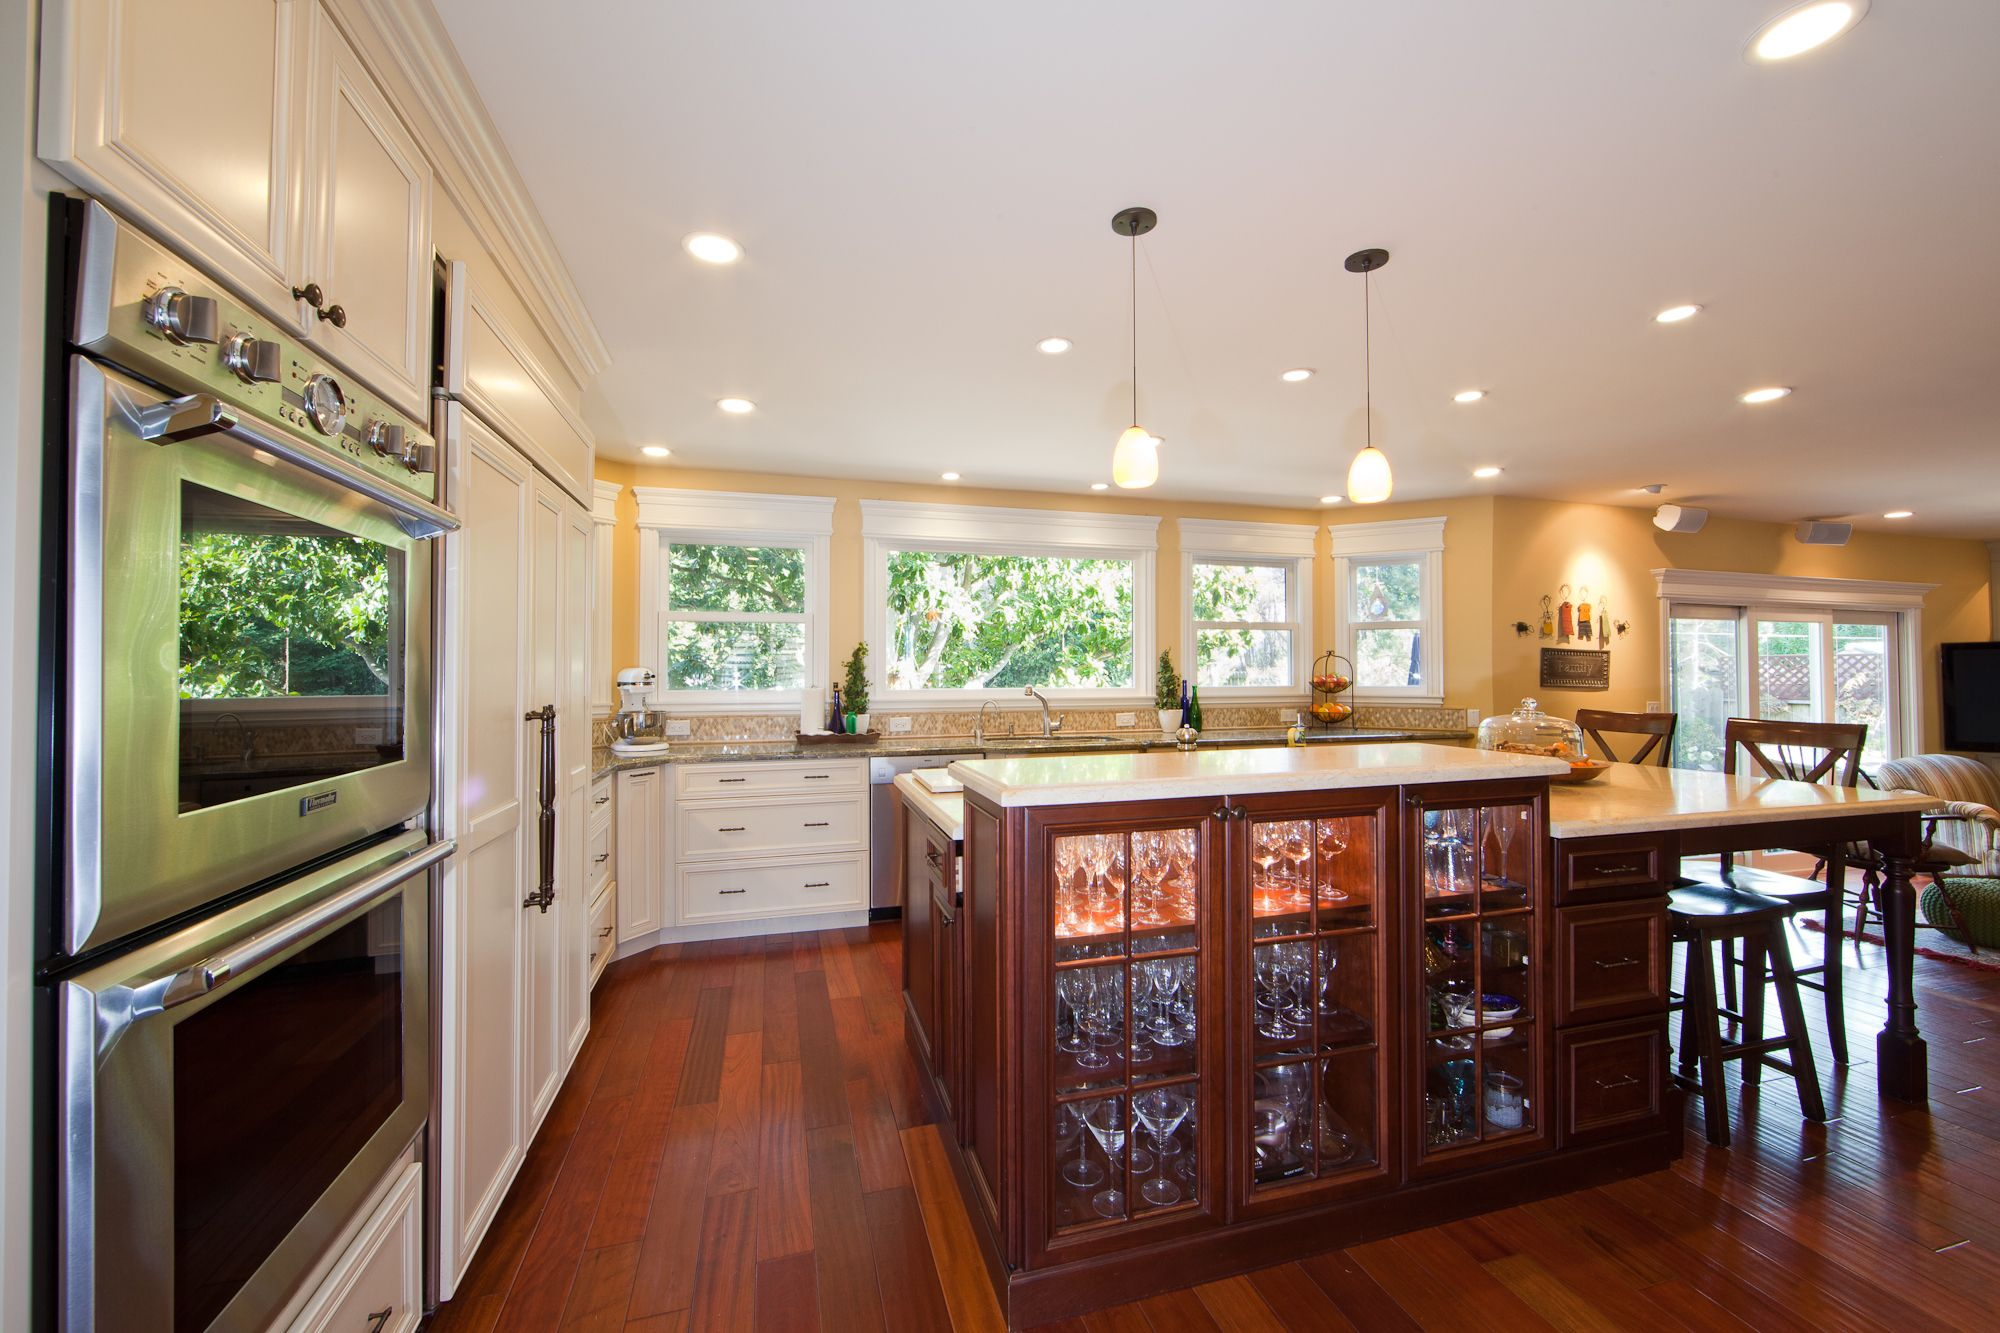 Open concept kitchen with island display cabinets.